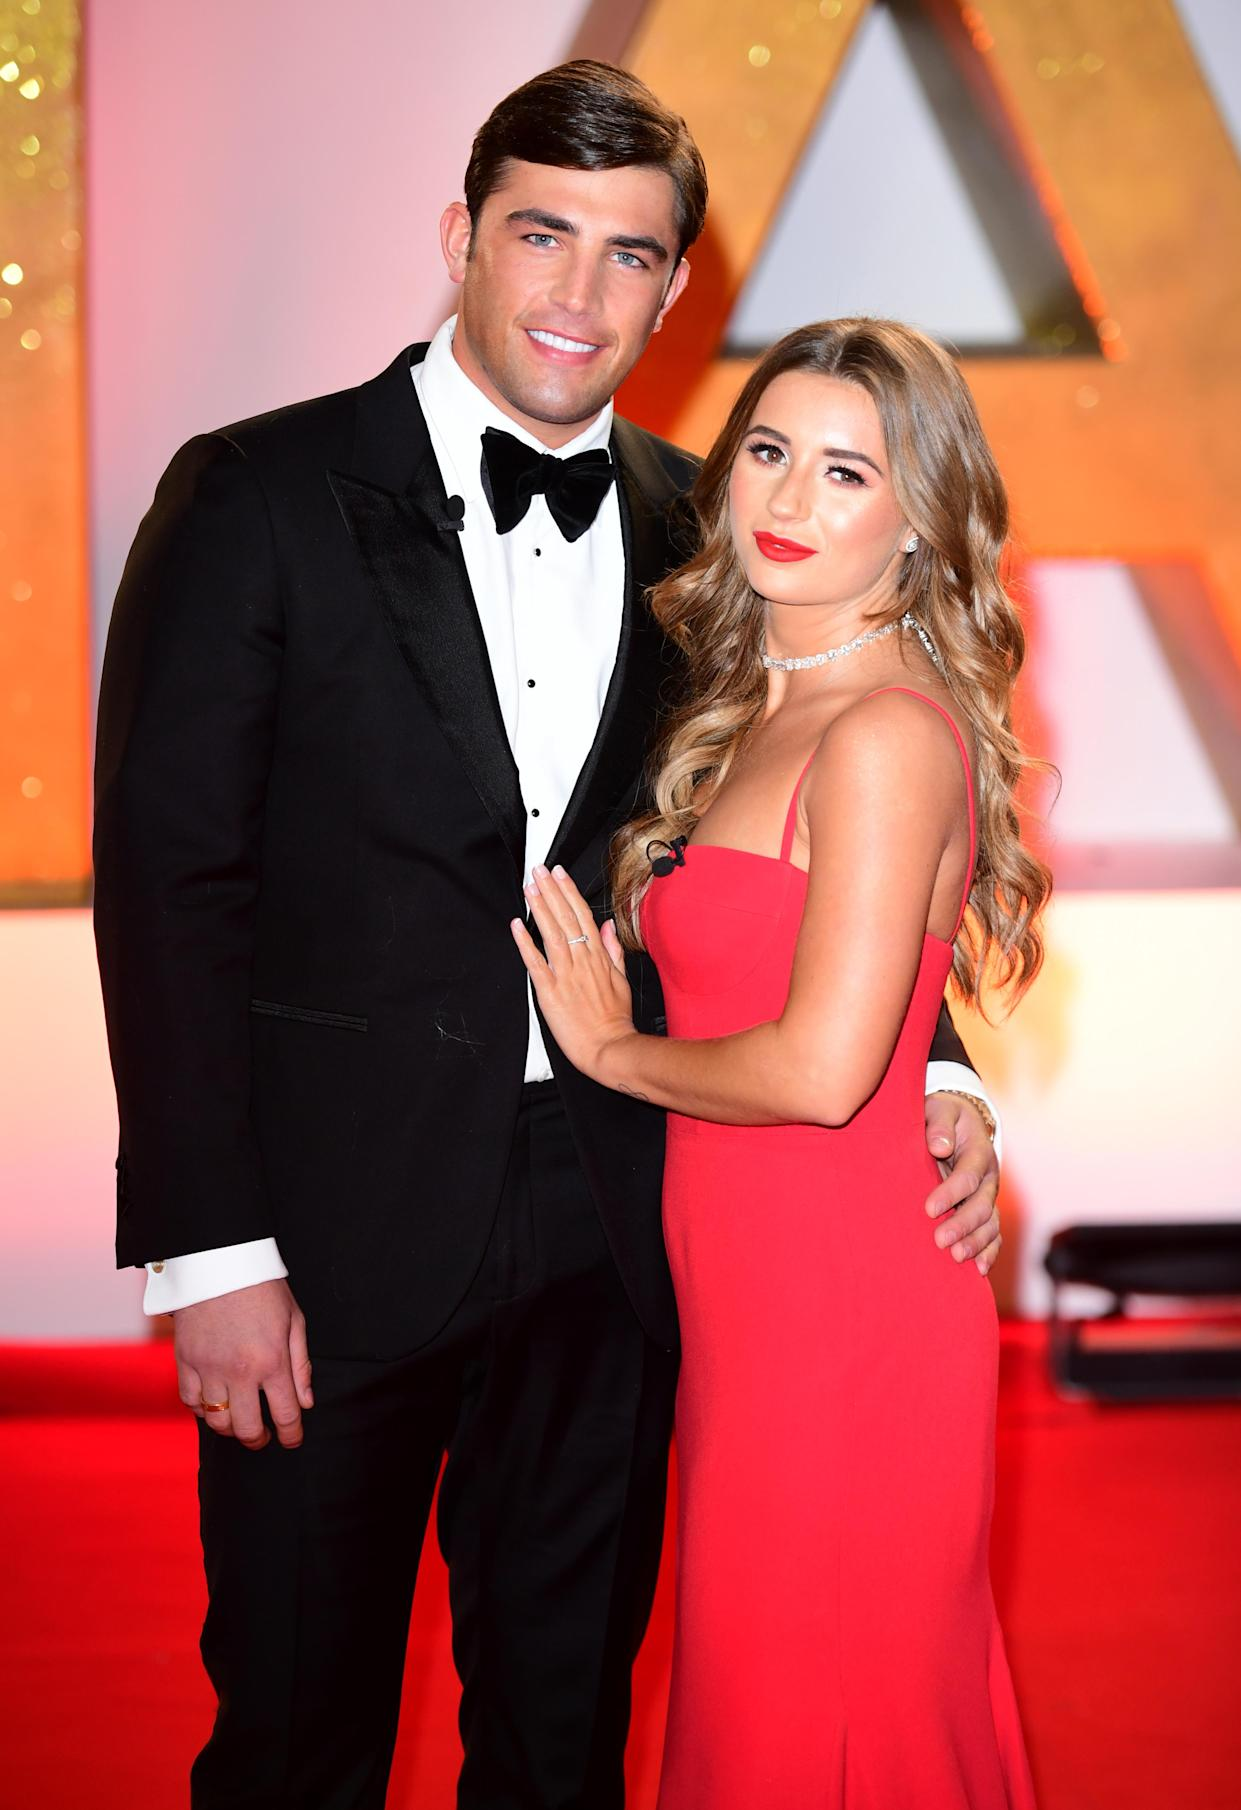 Jack Fincham and Dani Dyer attending the National Television Awards 2019 held at the O2 Arena, London. (Photo by Ian West/PA Images via Getty Images)